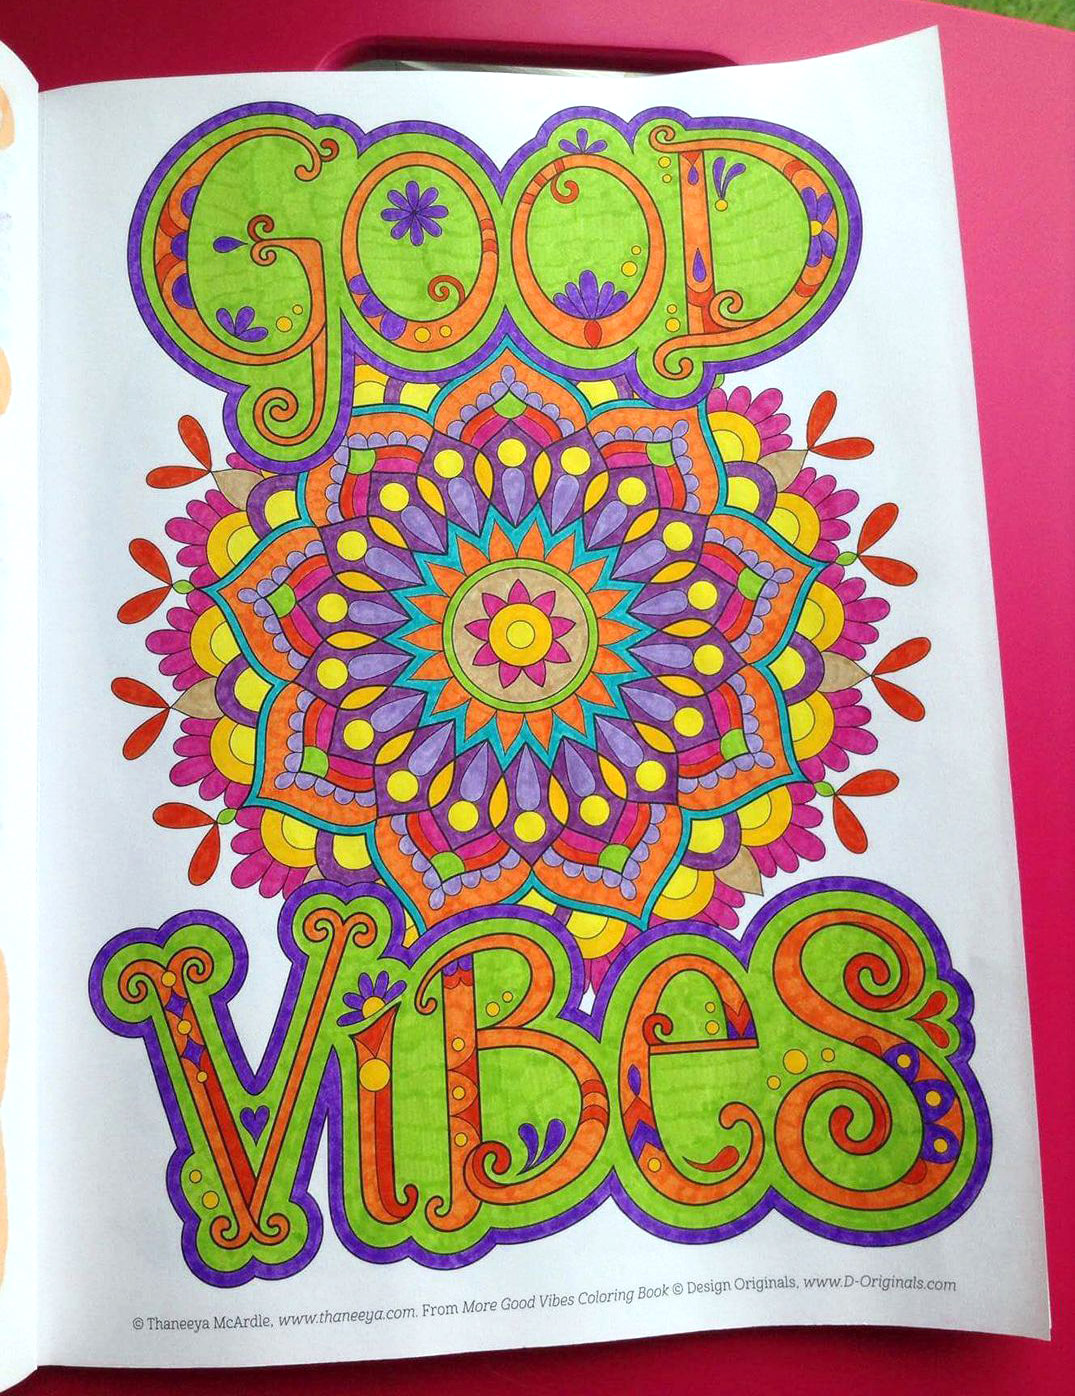 good-vibes-coloring-page-by-Thaneeya-McArdle-colored-by-TammyM.jpg